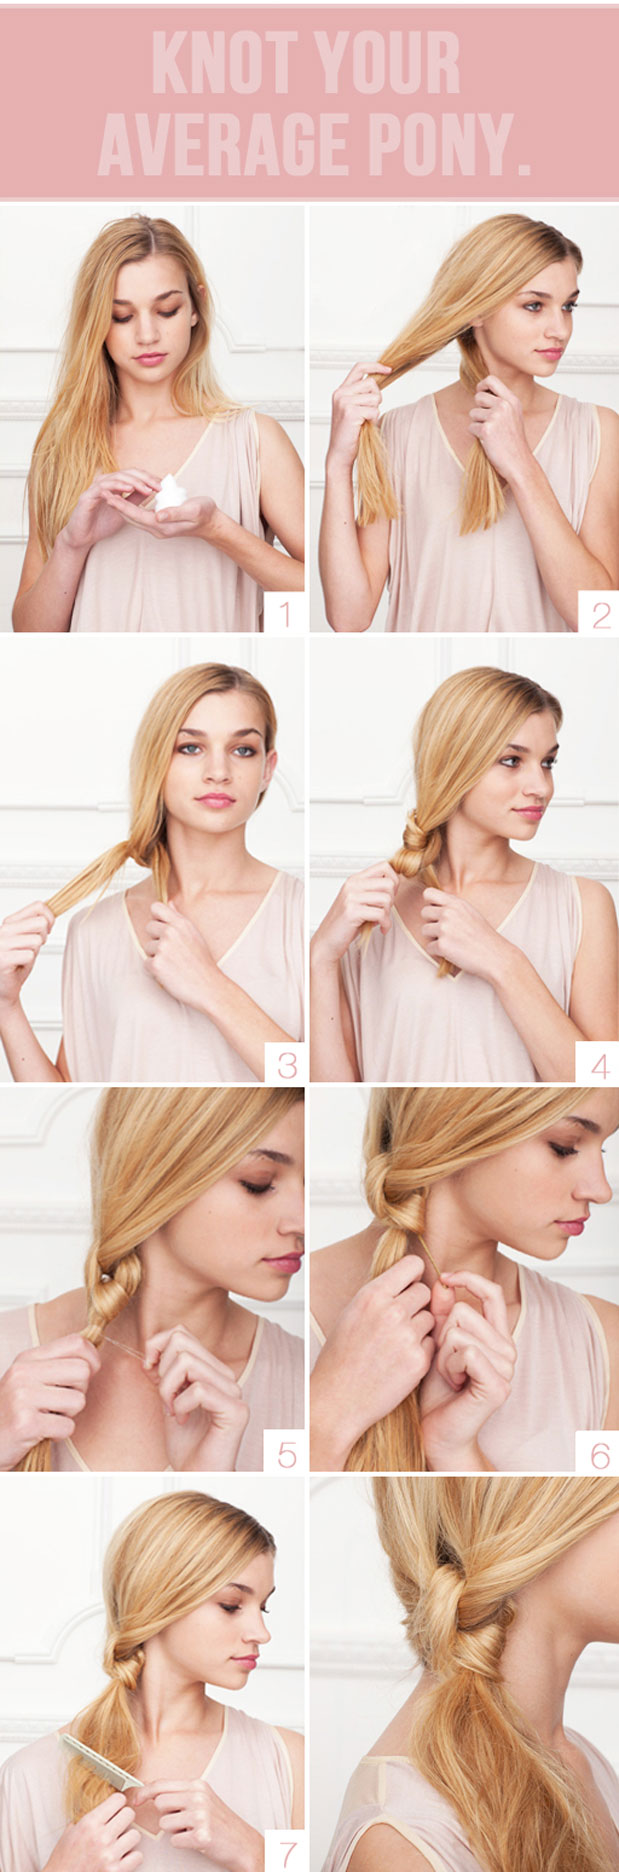 Knotted bangs - 15 ways to make cute ponytails